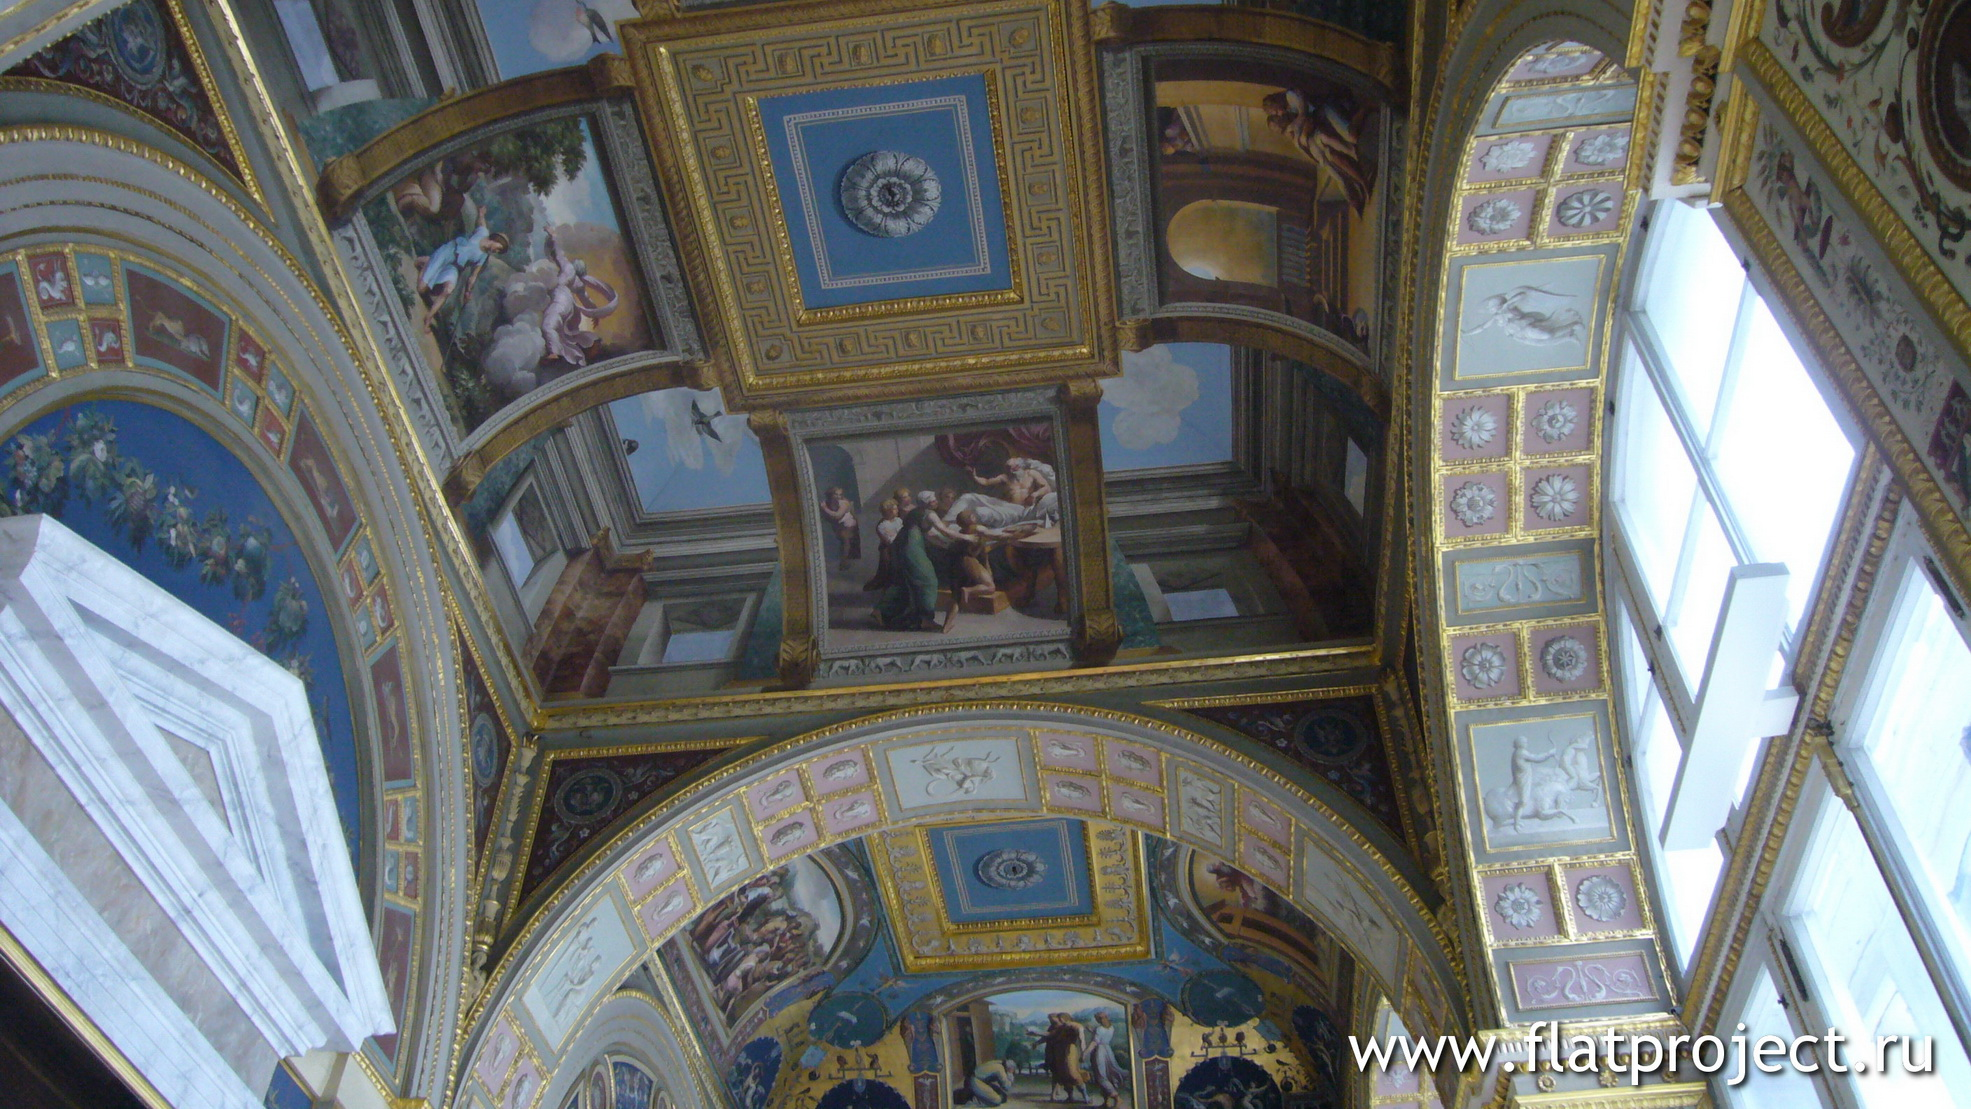 The State Hermitage museum interiors – photo 127